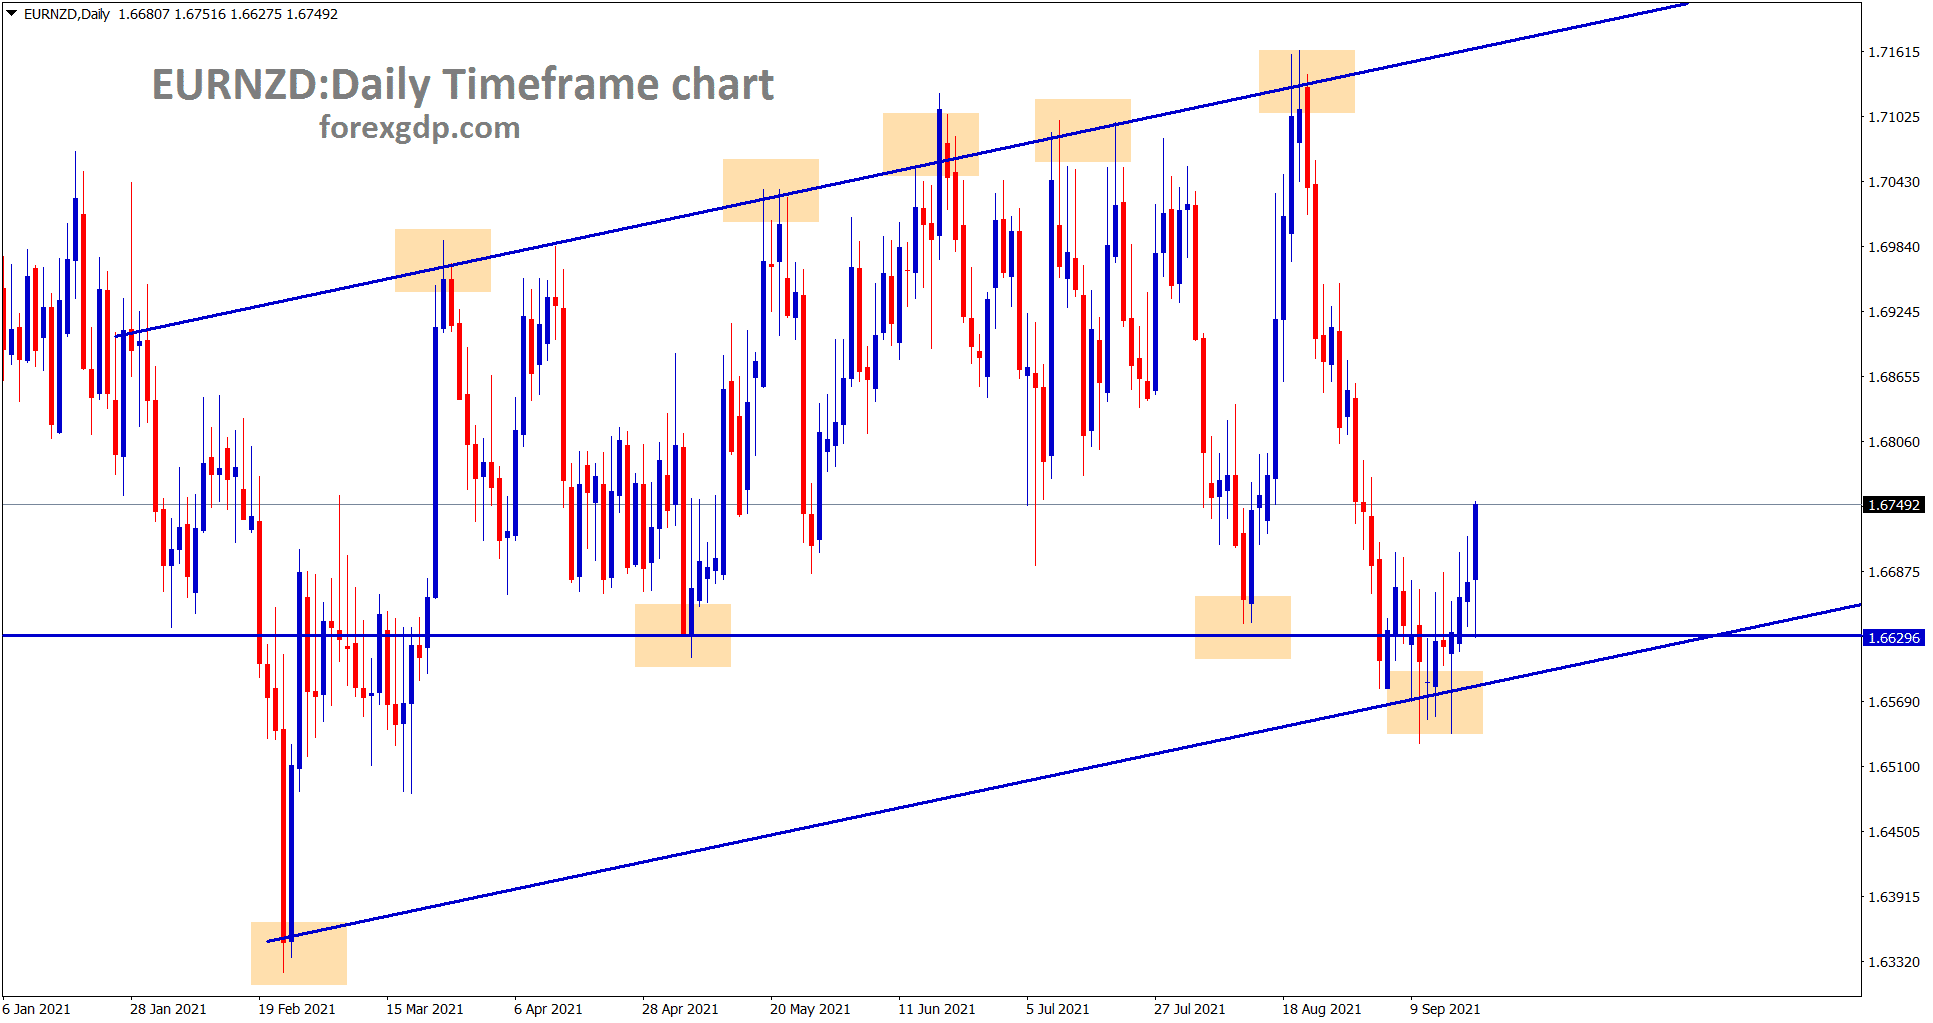 EURNZD is moving between the higher low ranges in the daily timeframe